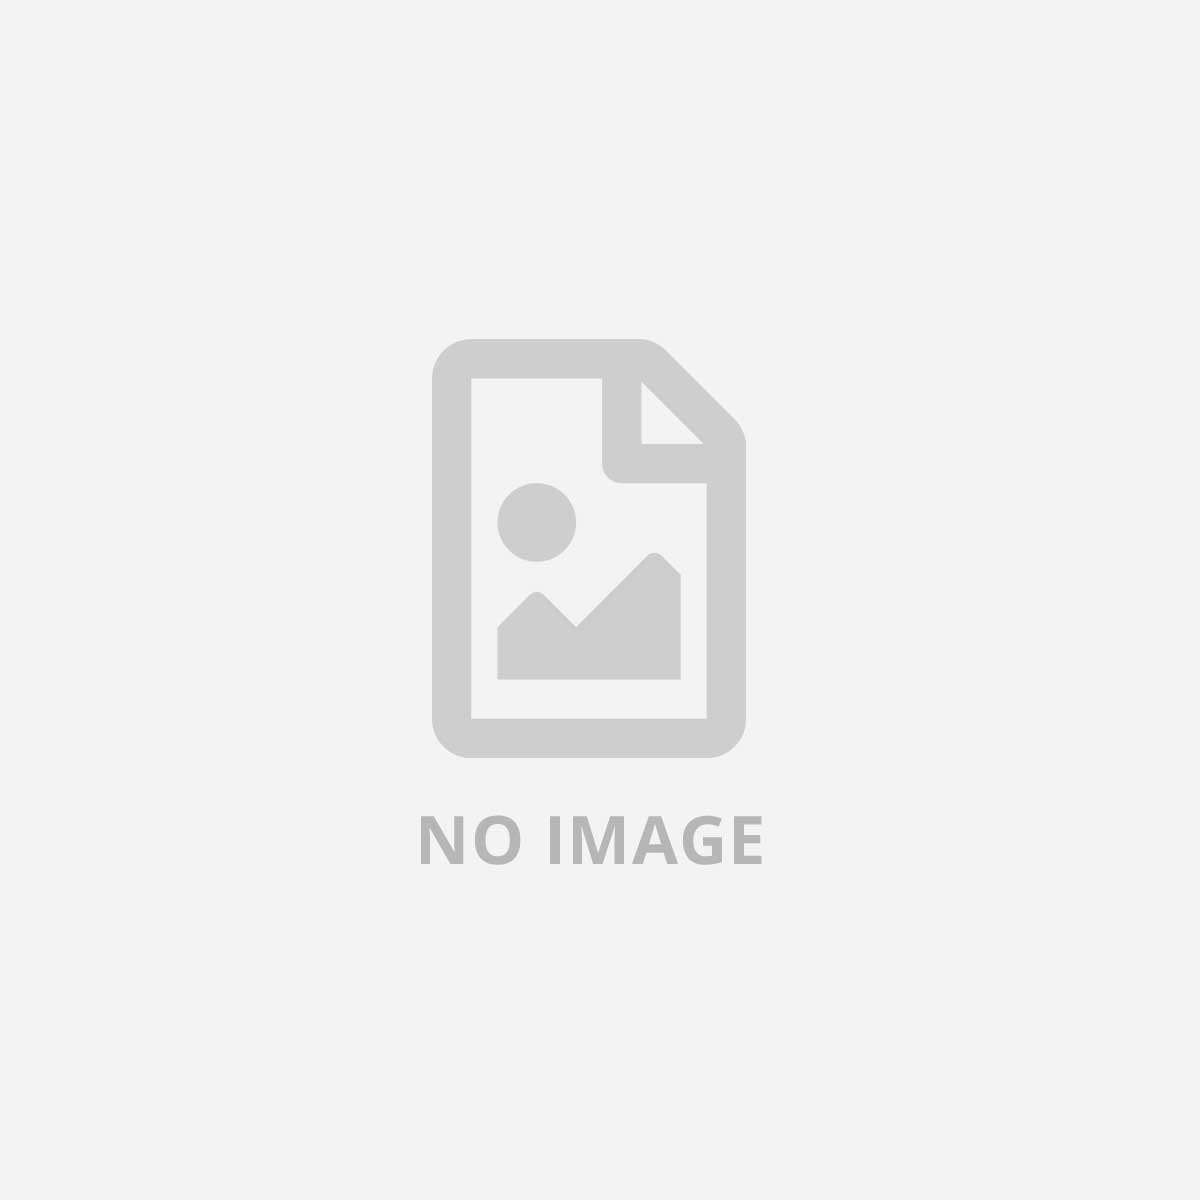 MICROSOFT OFFICE 365 EXTRA FILE STORAGE